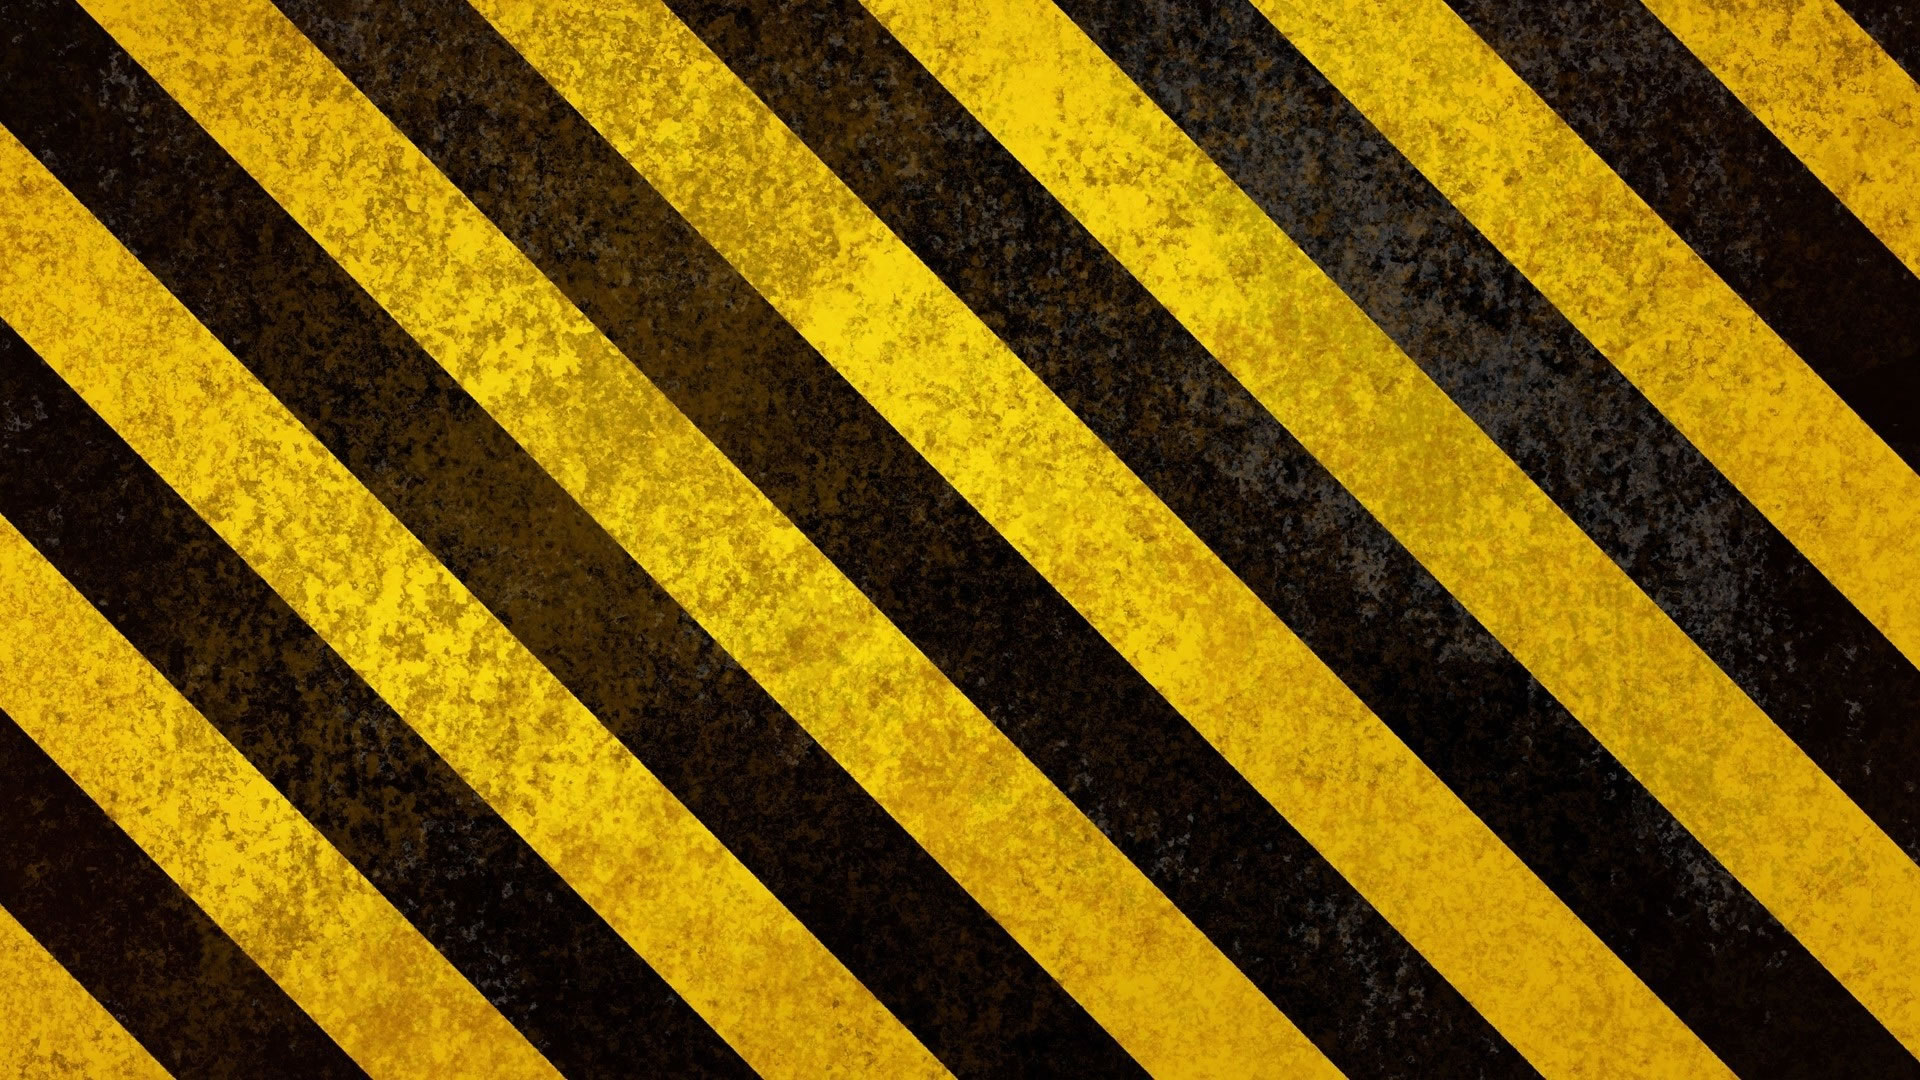 An image of a yellow and black stripes